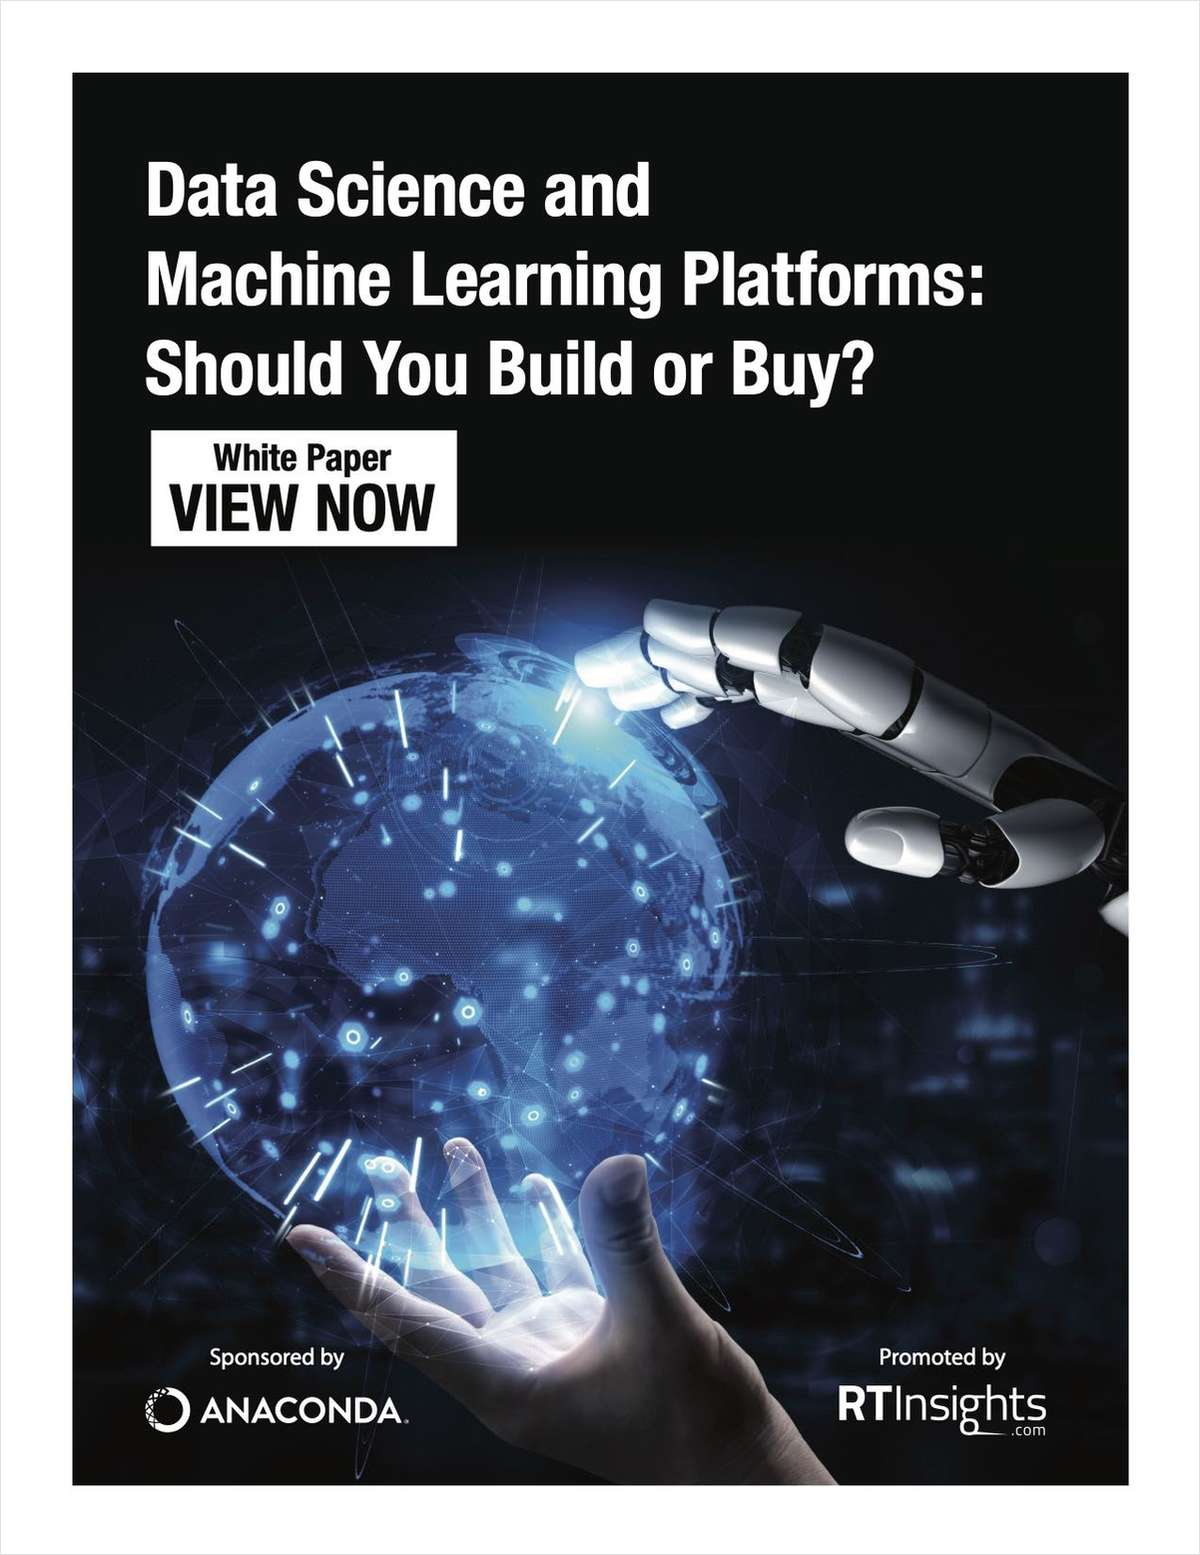 Data Science and Machine Learning Platforms: Should You Build or Buy?